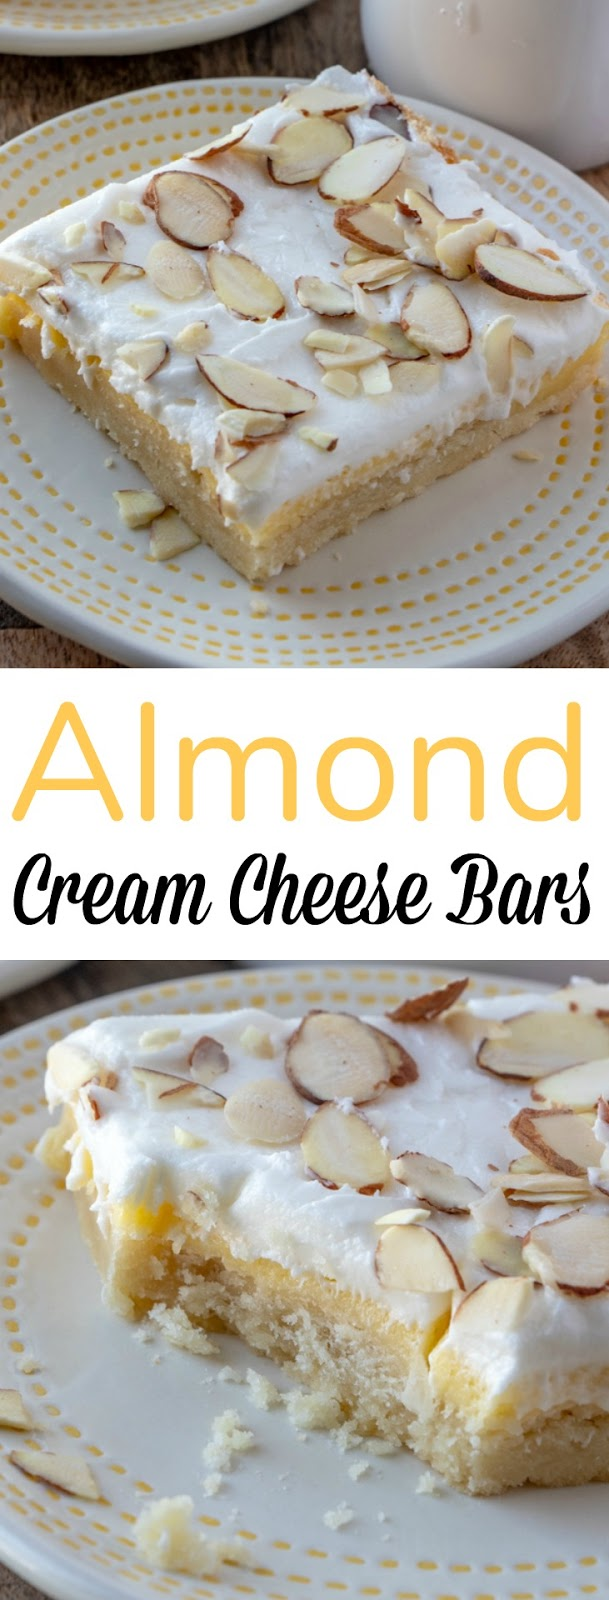 Creamy, sweet and delicious, these almond bars with a shortbread crust are pretty much perfection! Great for the holidays, game day parties, potlucks or dessert!